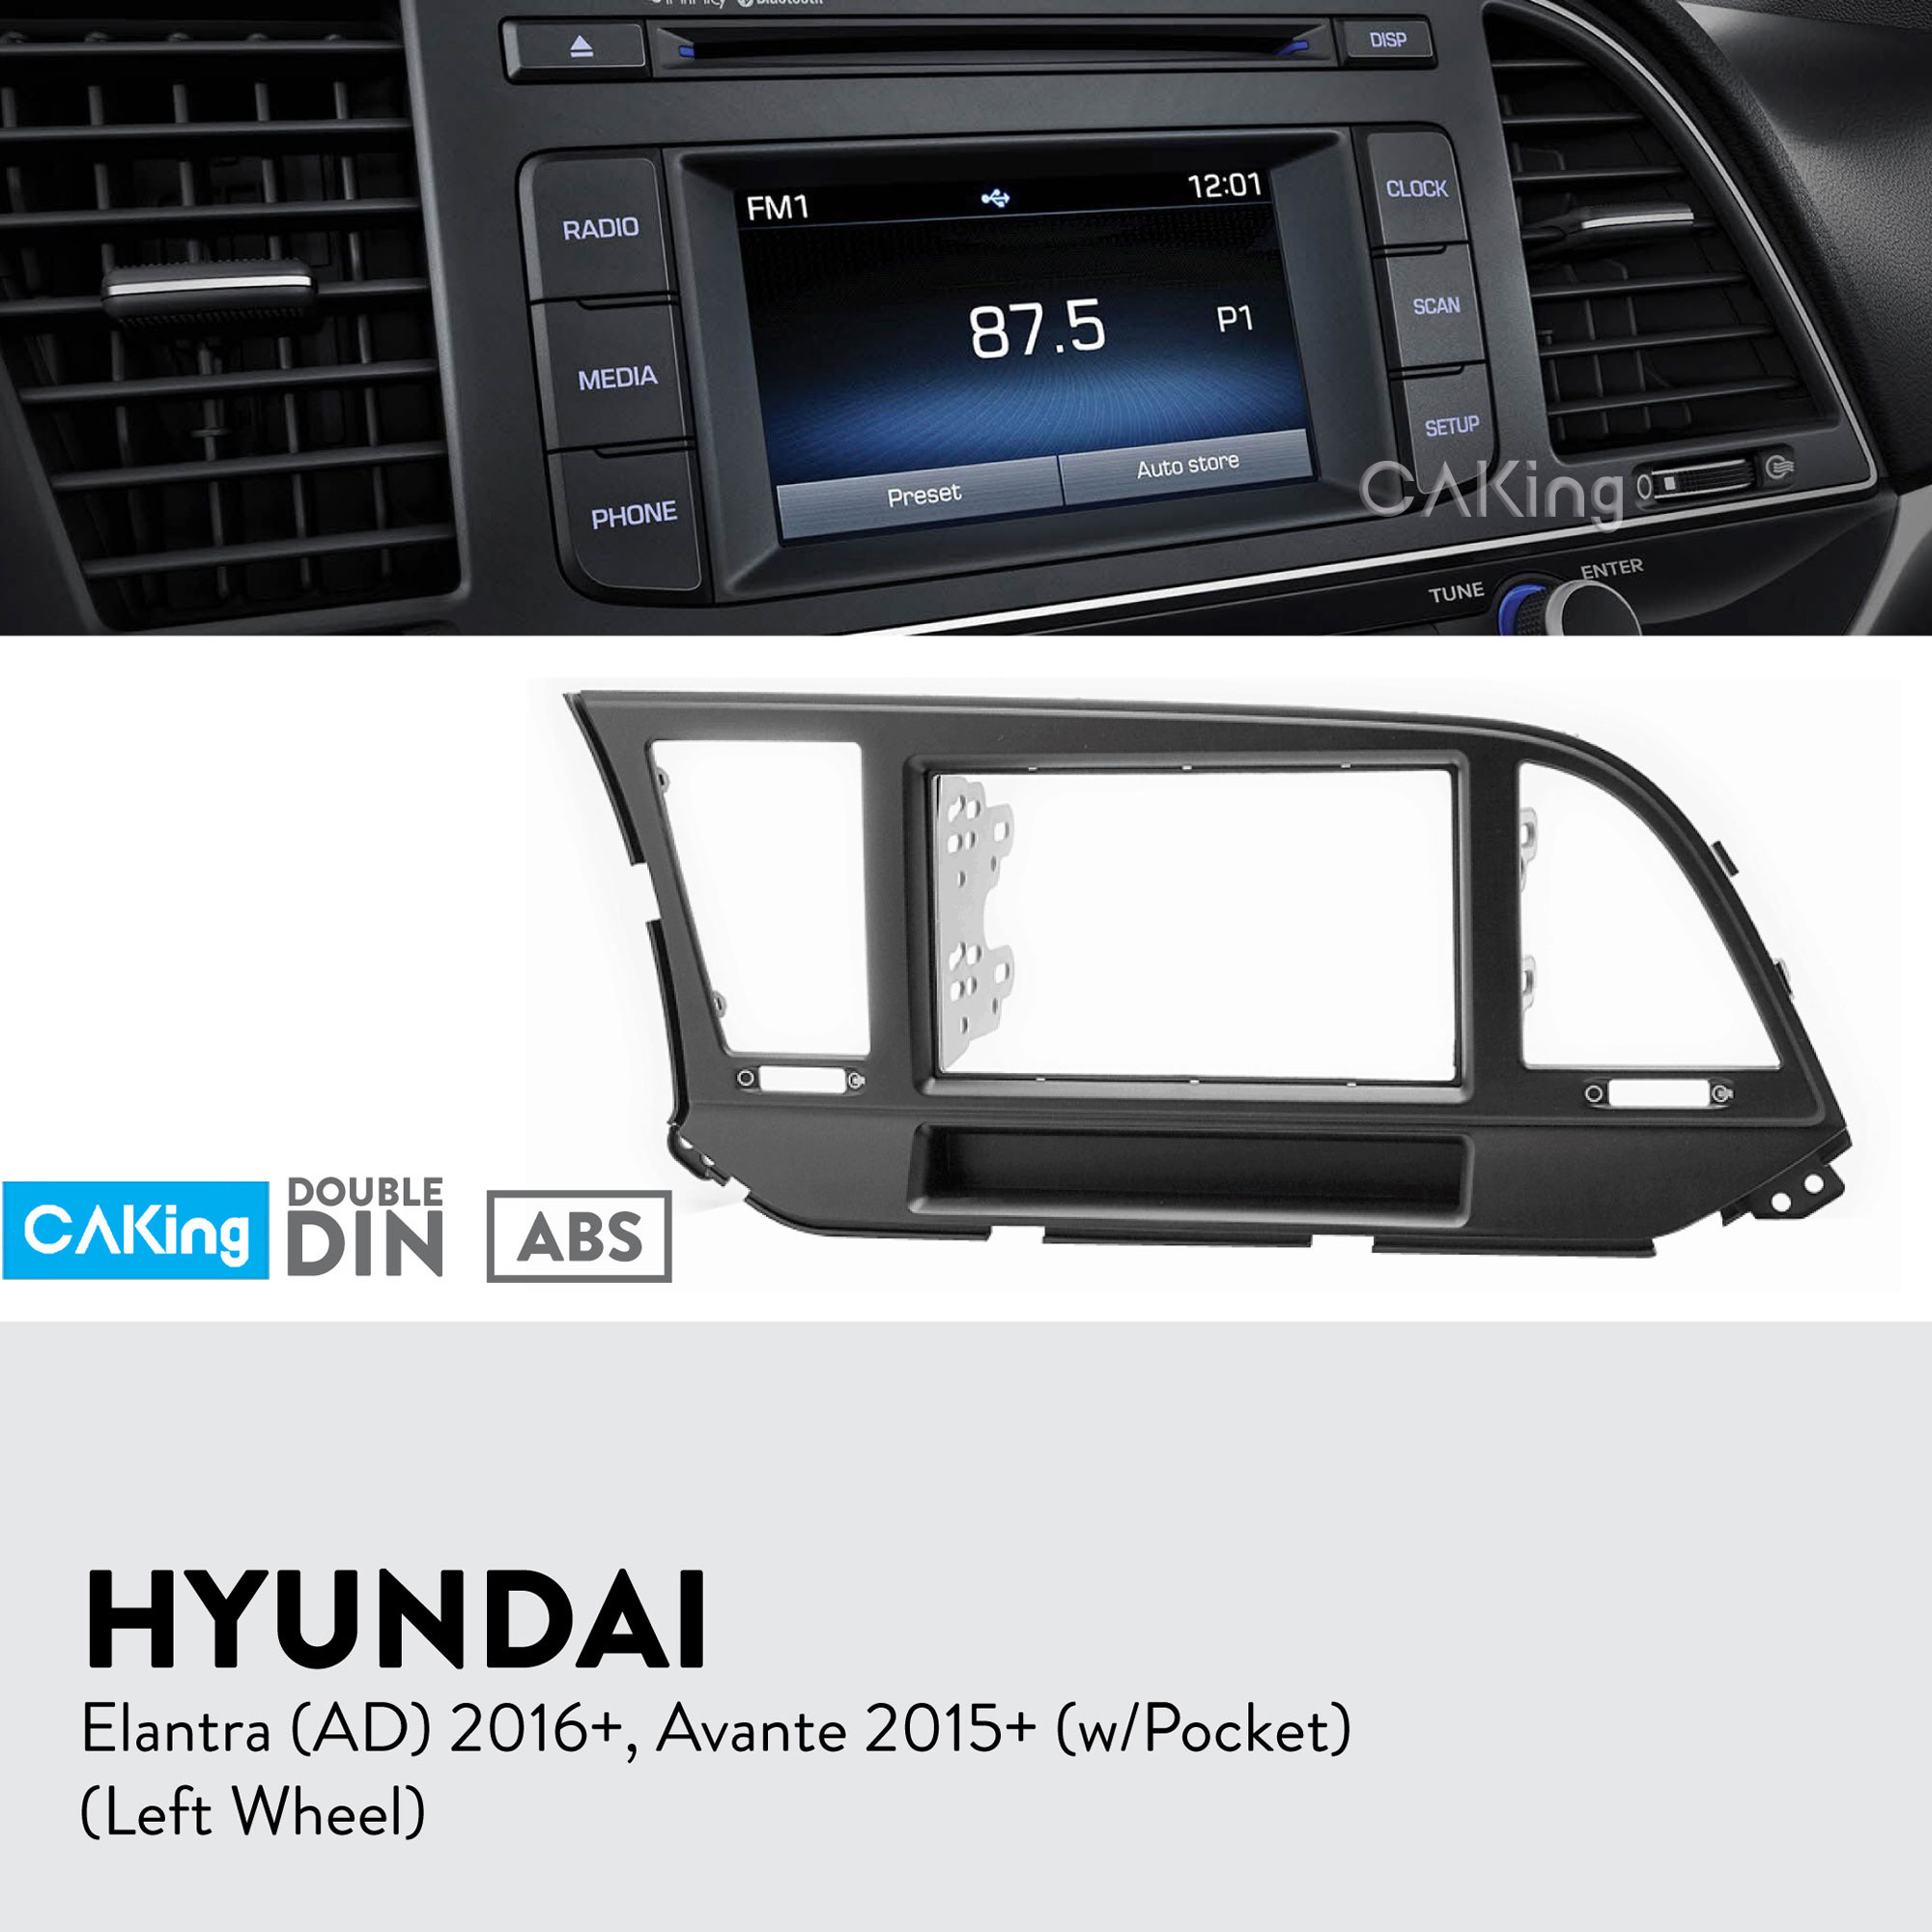 Fascia Radio Panel for HYUNDAI Elantra AD 2016 Avante 2015 Left Wheel Dash Kit Facia Plate